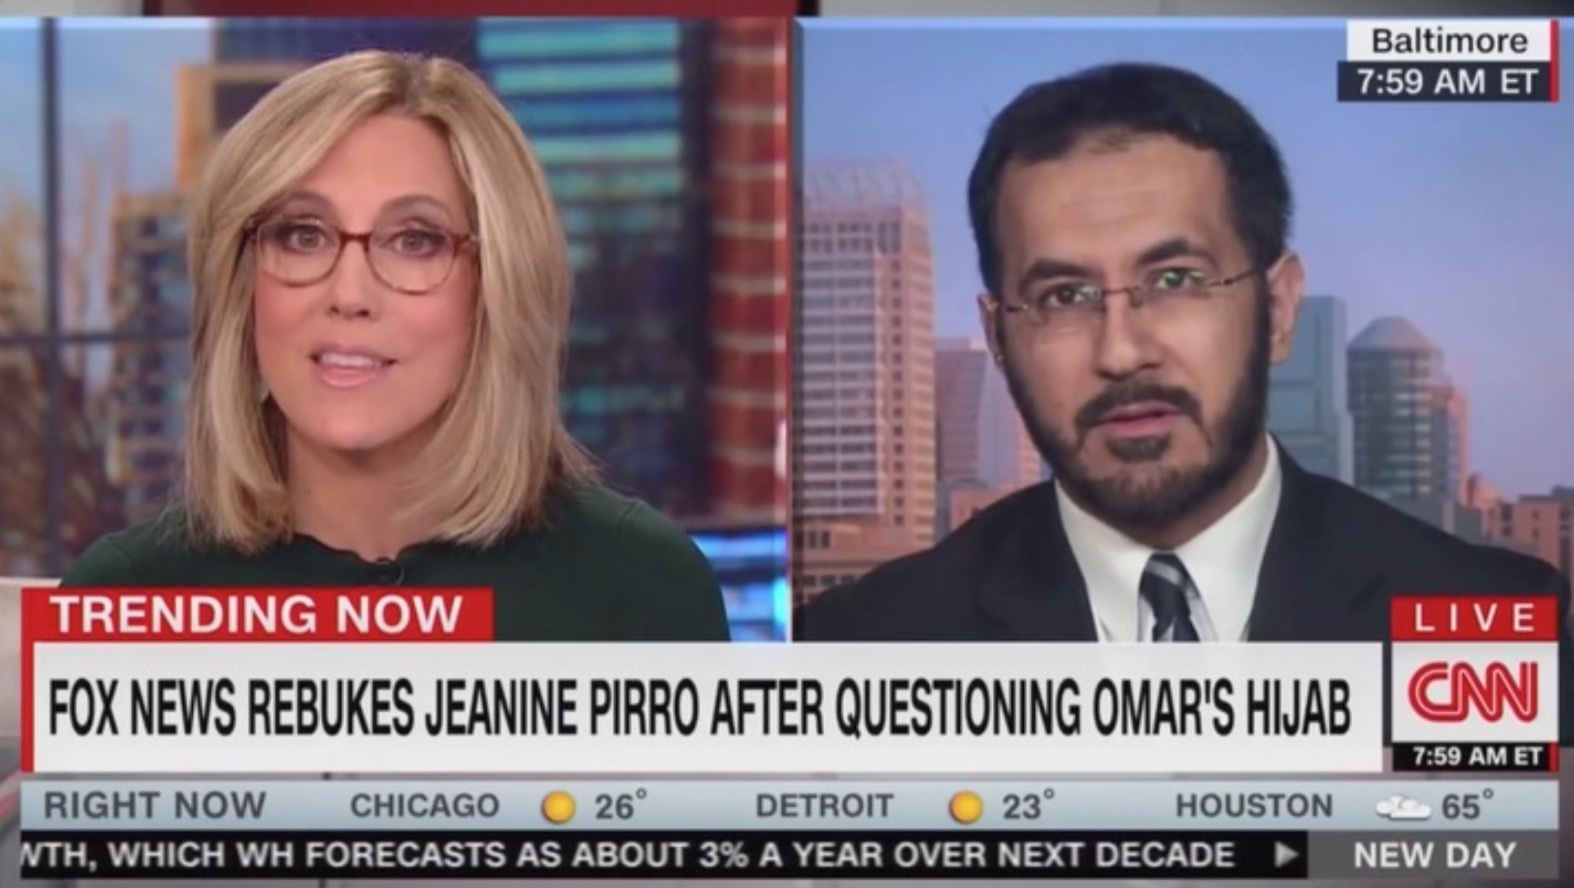 Muslim Marine to CNN: Jeanine Pirro 'Should Be Fired' For Omar, Hijab Comments